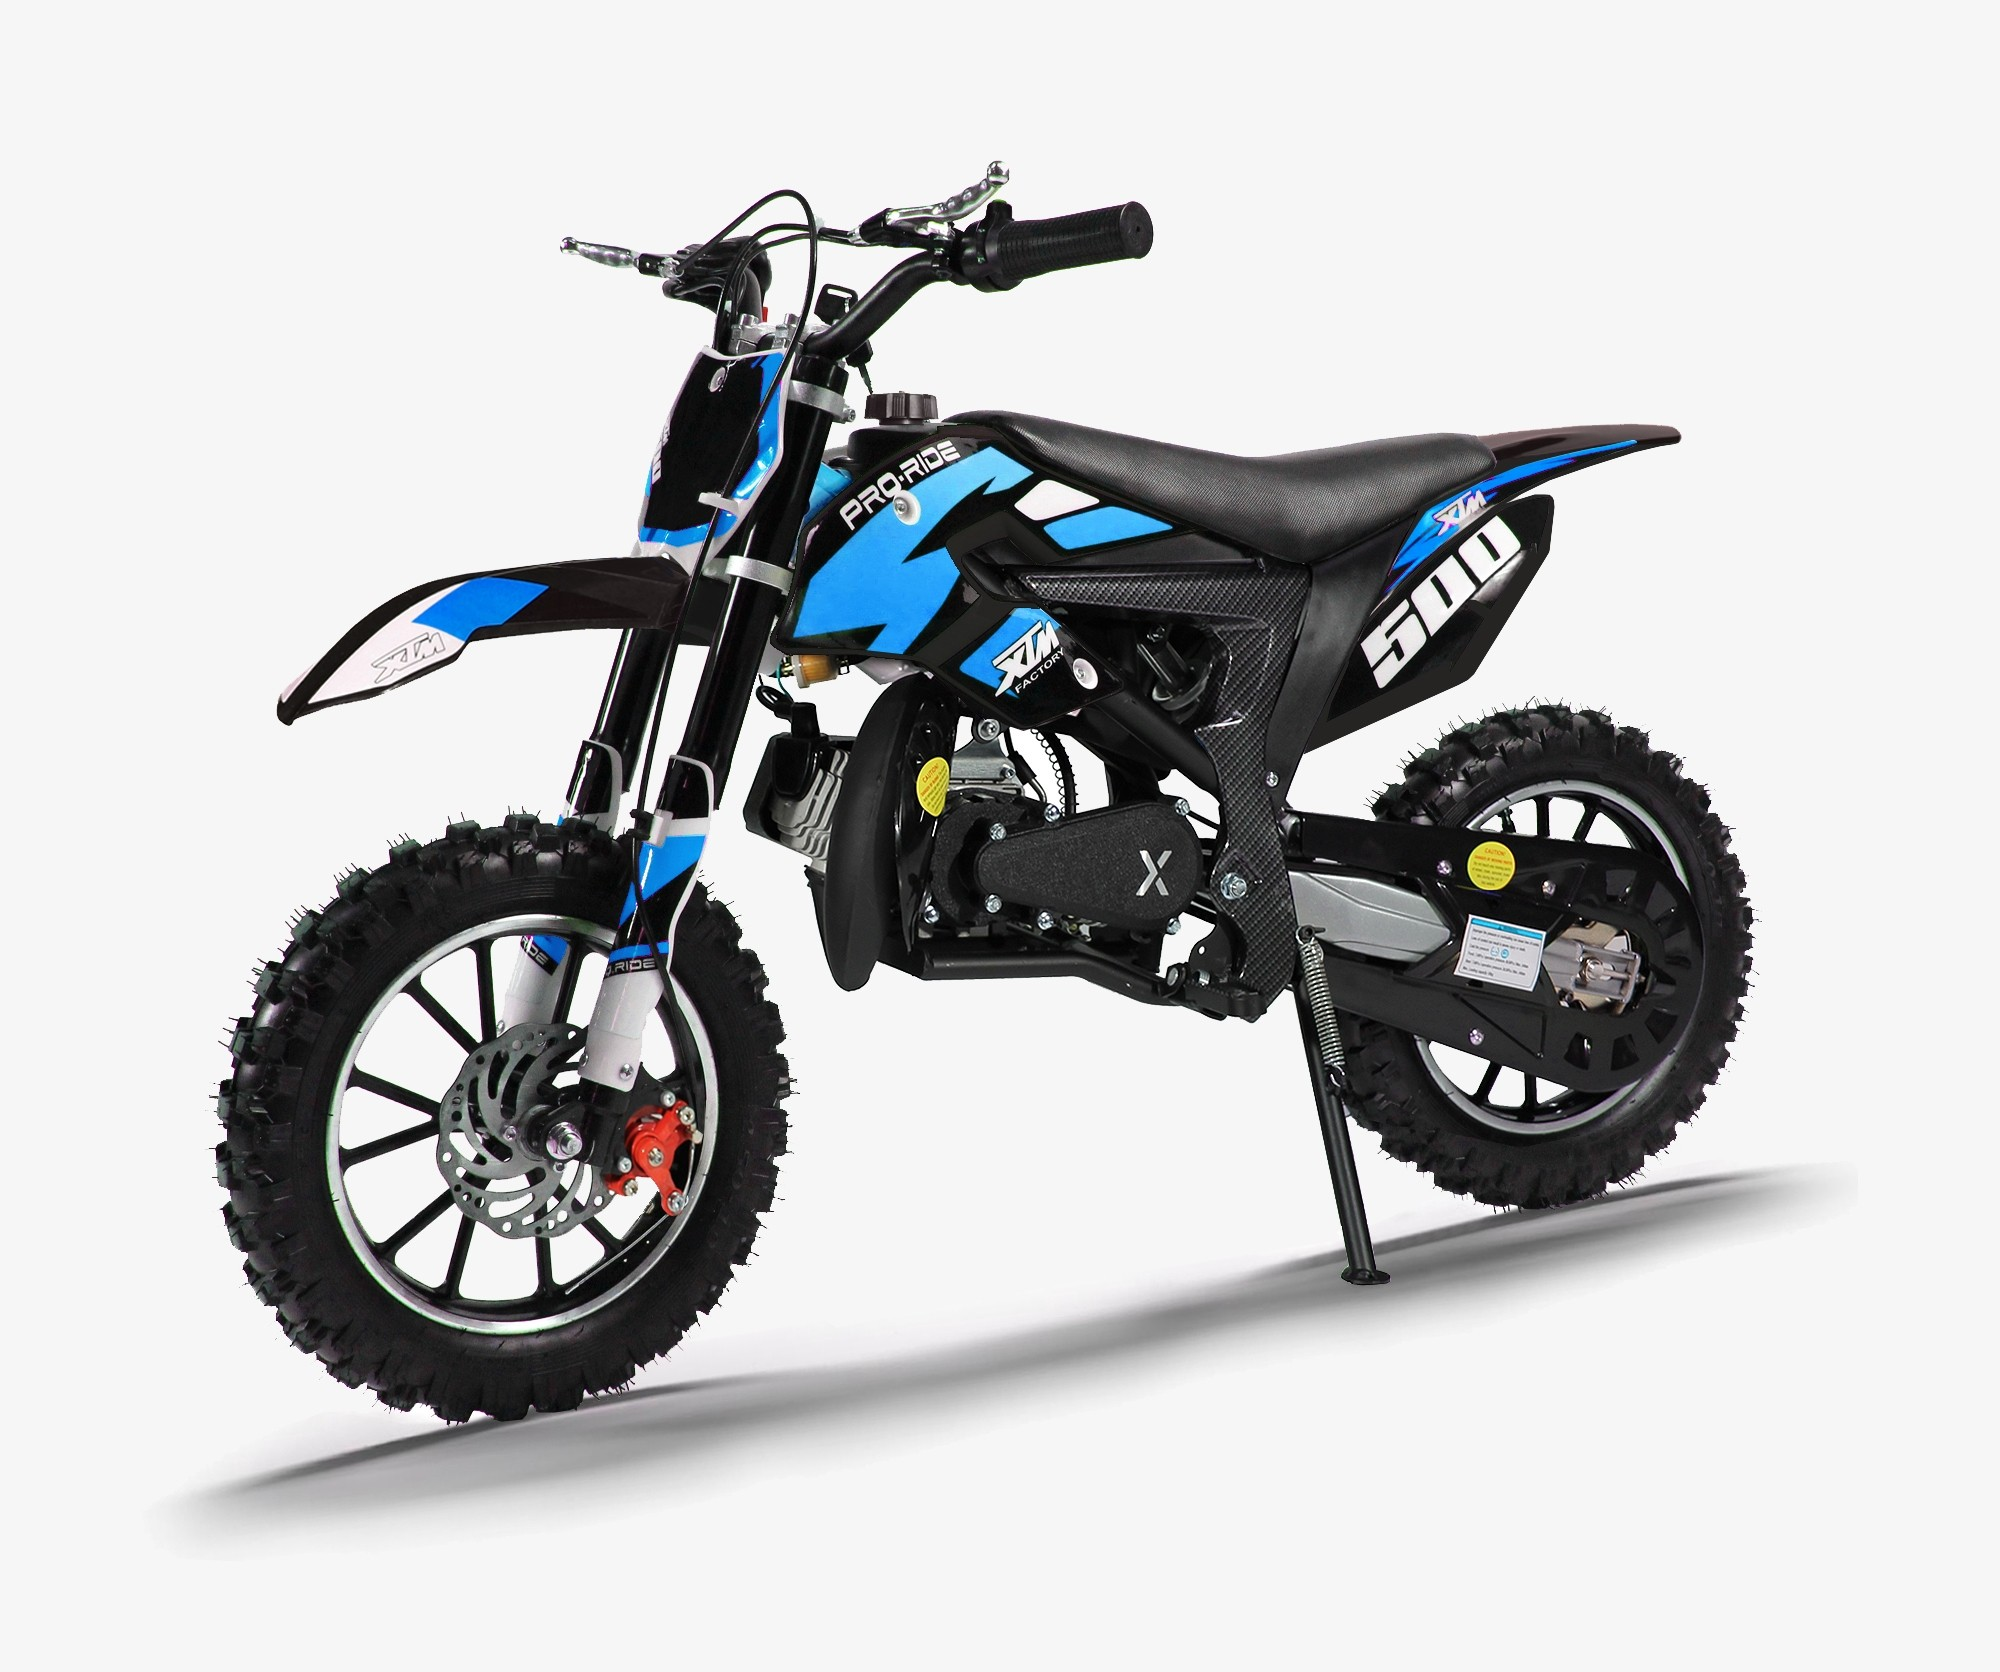 XTM PRO-RIDER 50cc DIRT BIKE BLACK BLUE